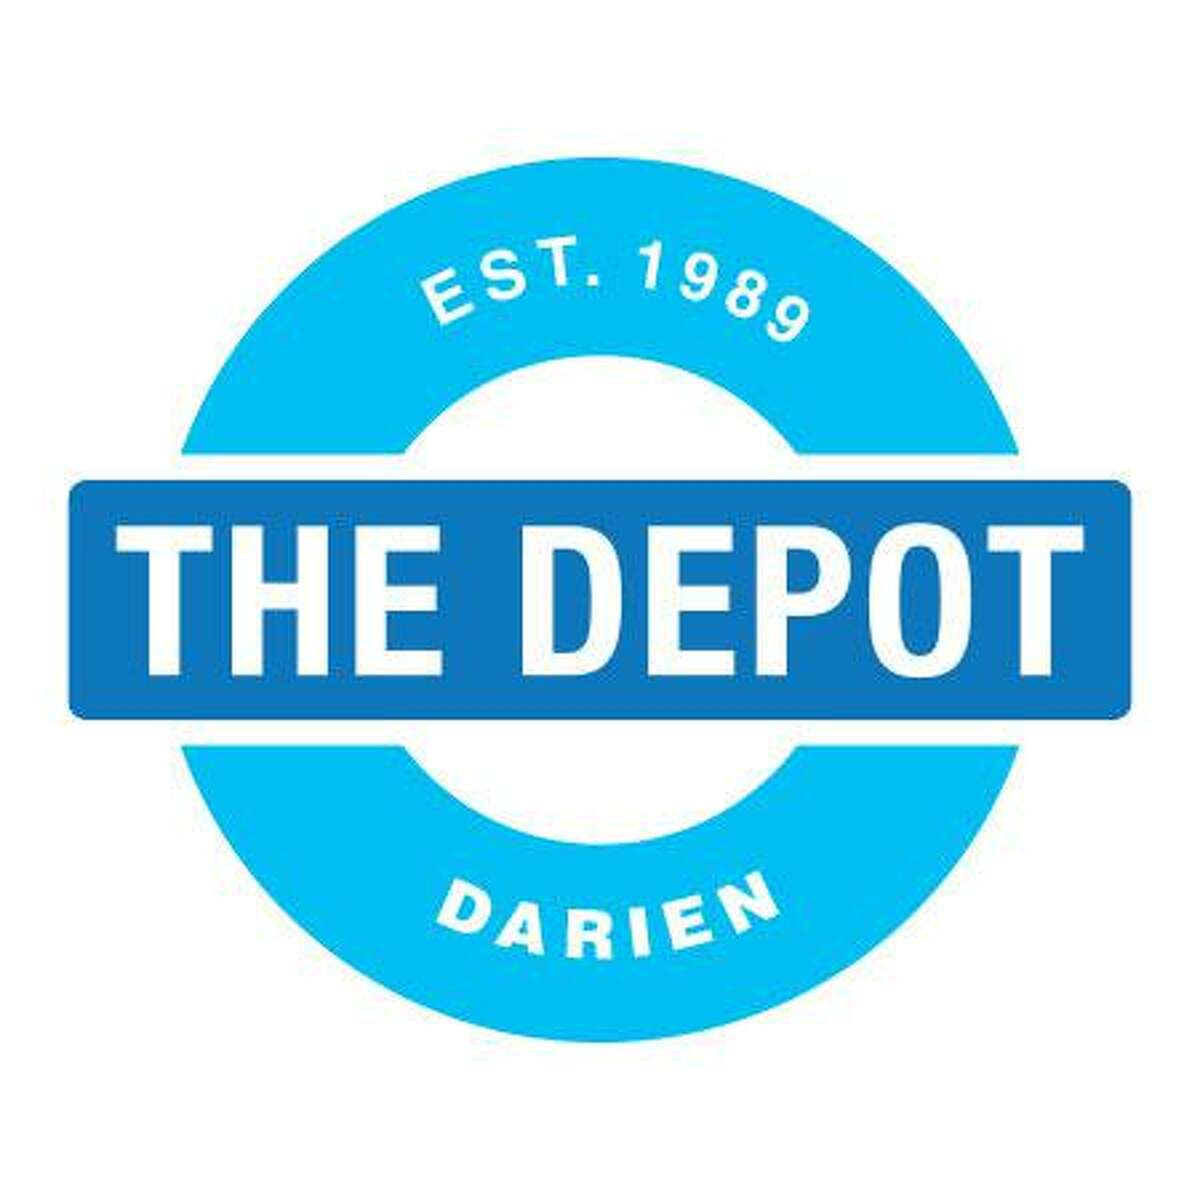 Darien Depot logo. March 15 is National Safe Place week. The Depot Youth Center in Darien is a Safe Place.